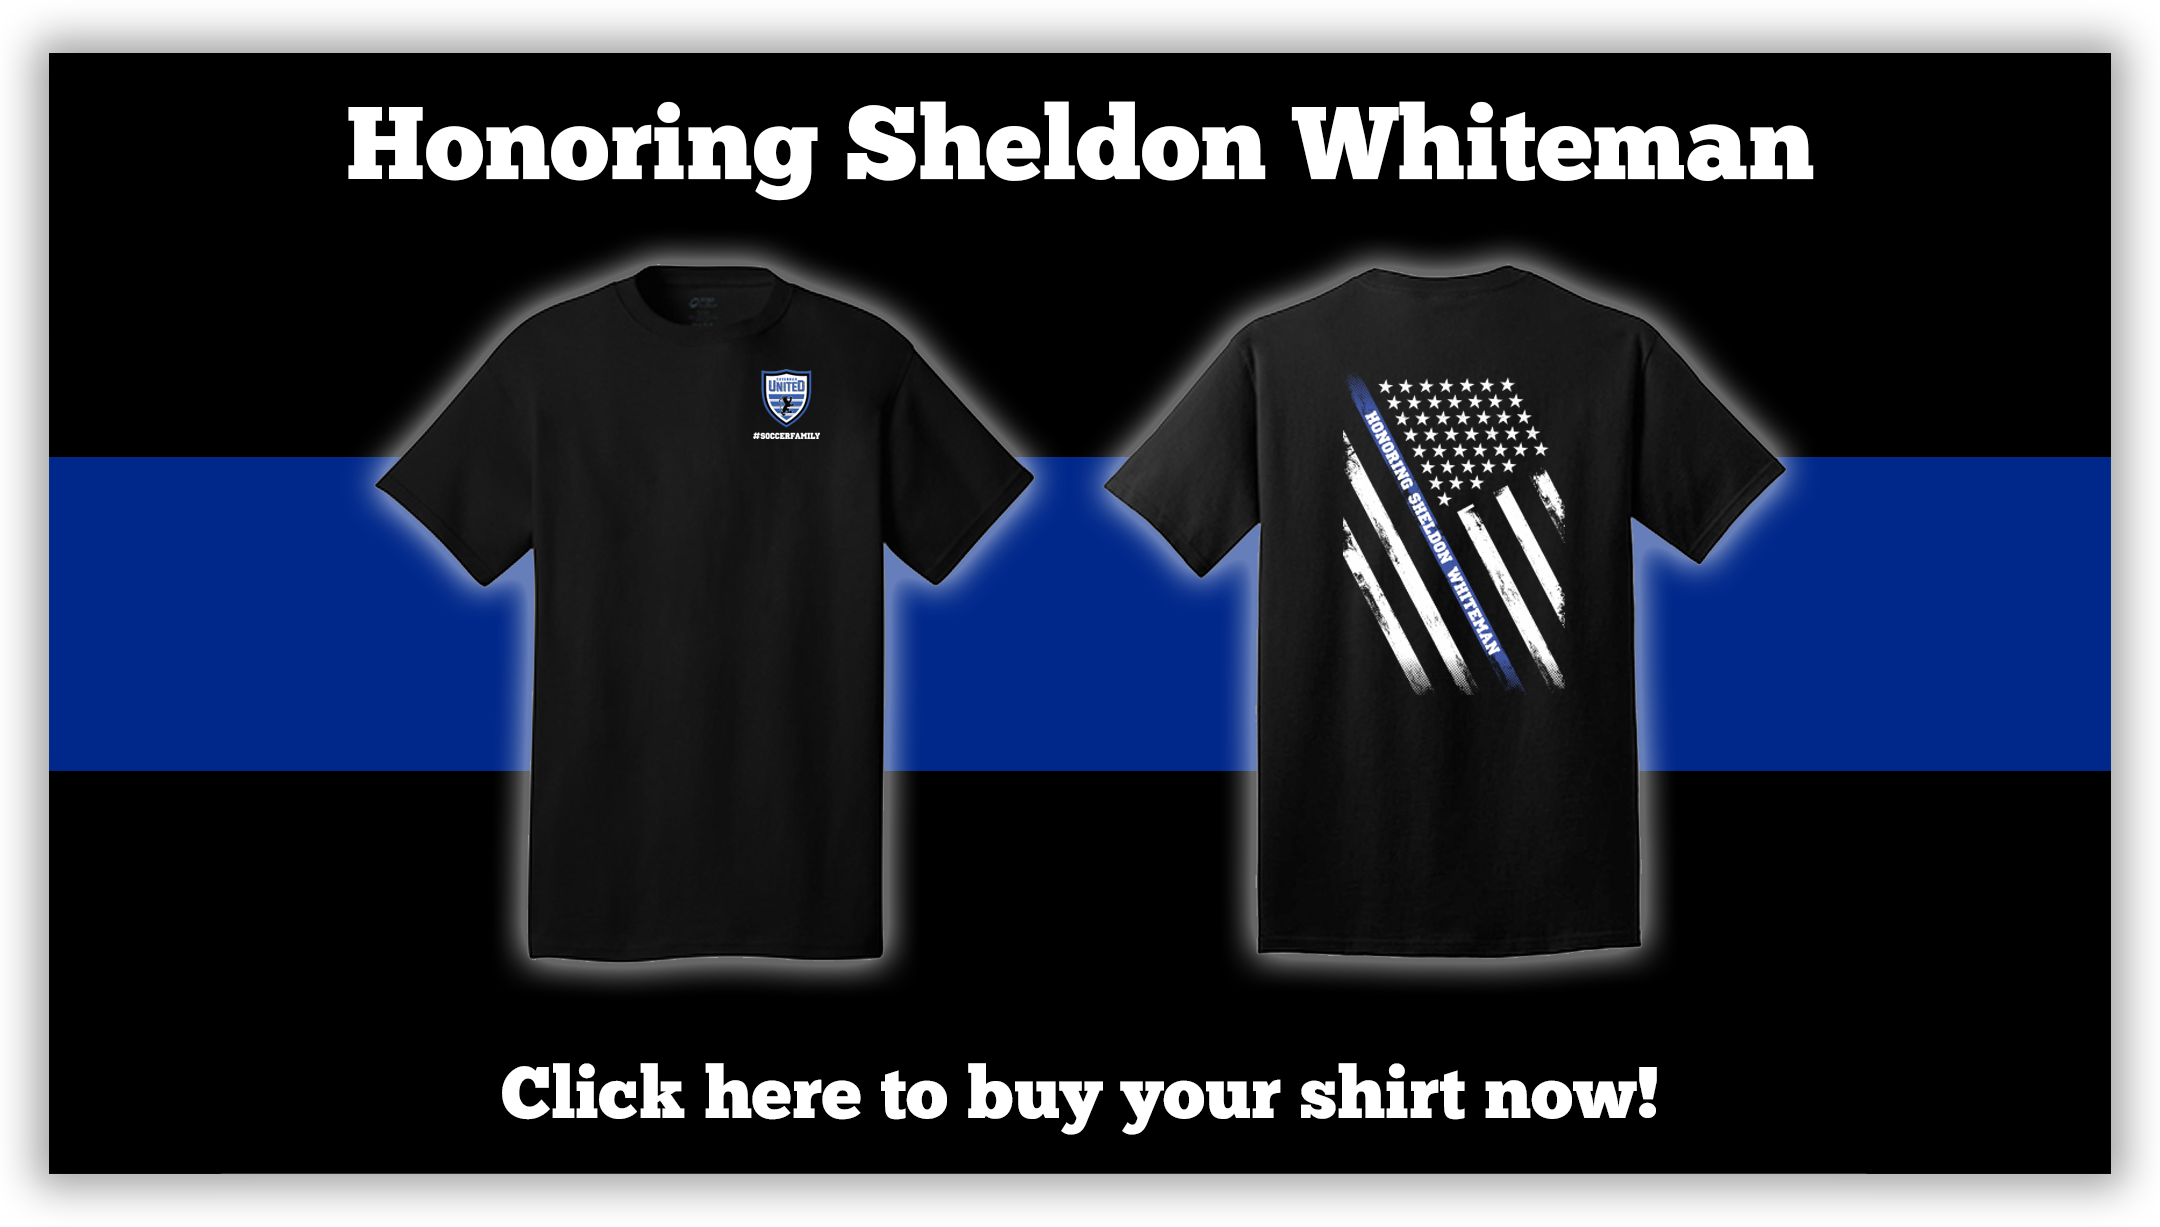 Honoring Sheldon Whiteman